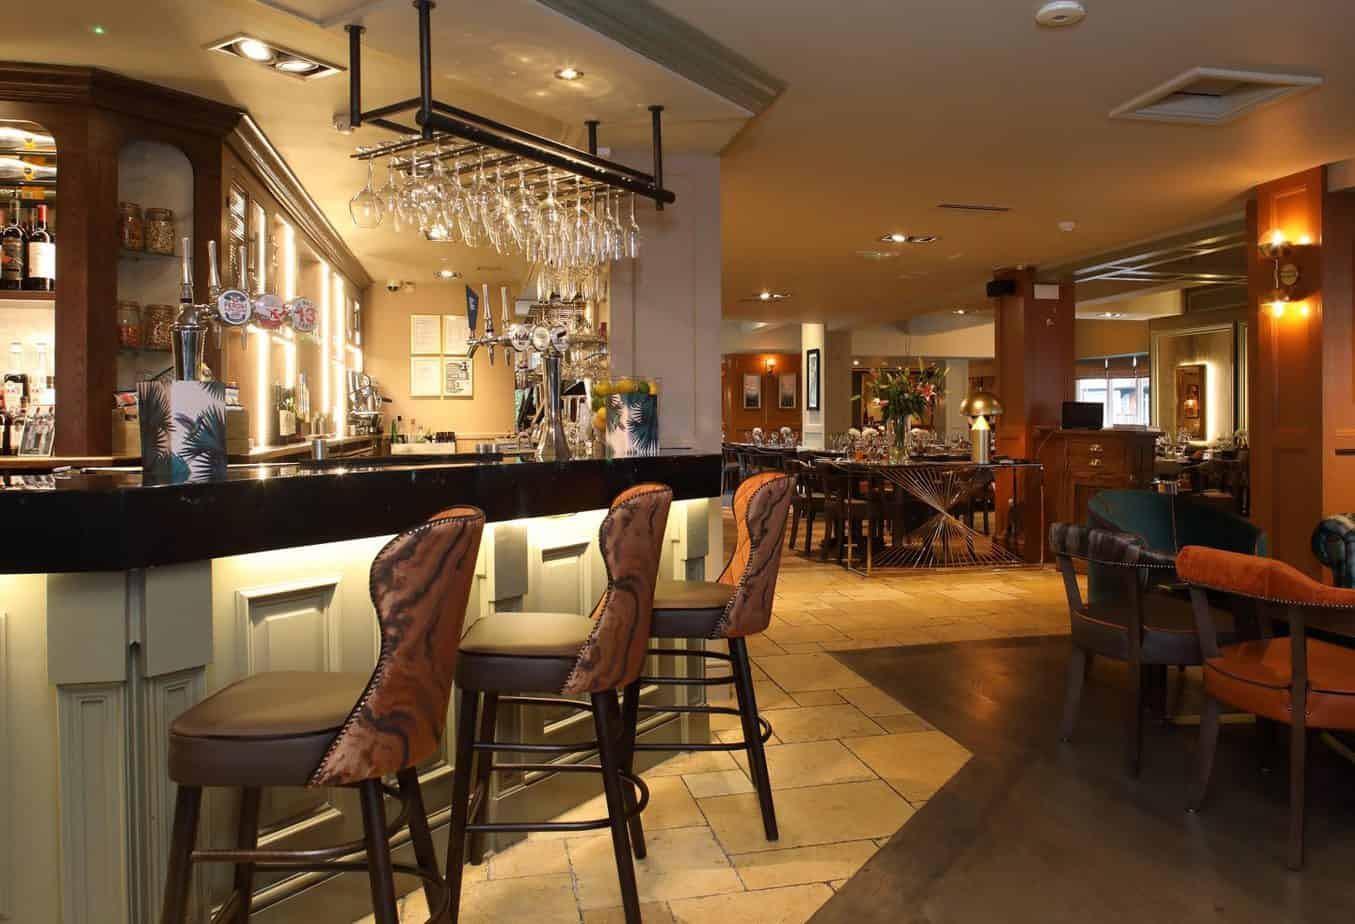 The bar area leading to the restaurant at The Green House Pub in Sutton Coldfield